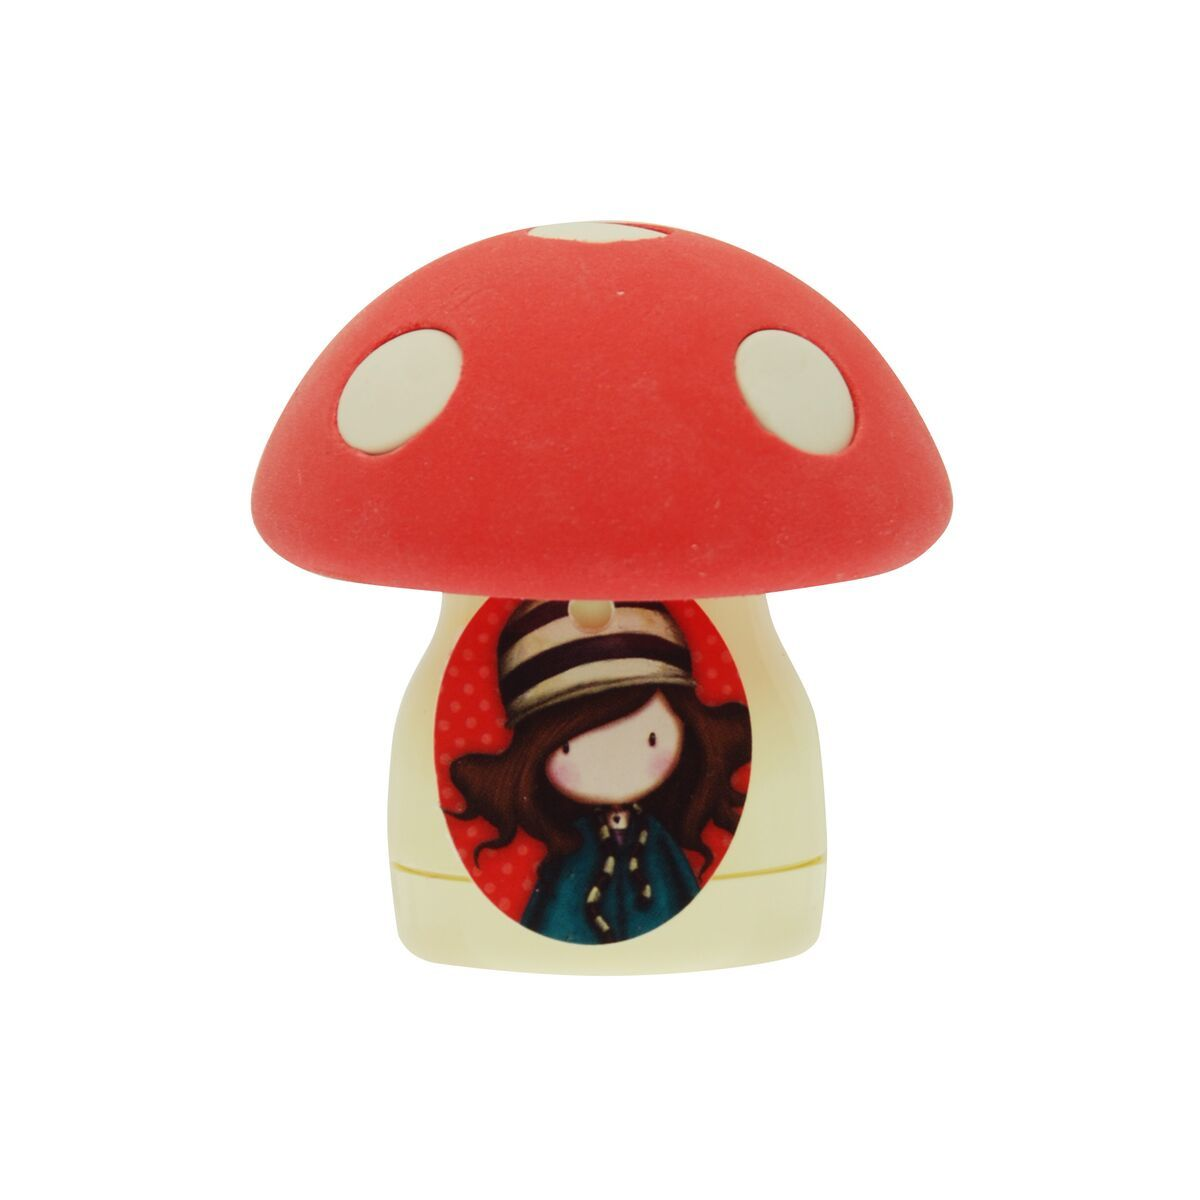 Champignon gomme et taille crayons - Gorjuss